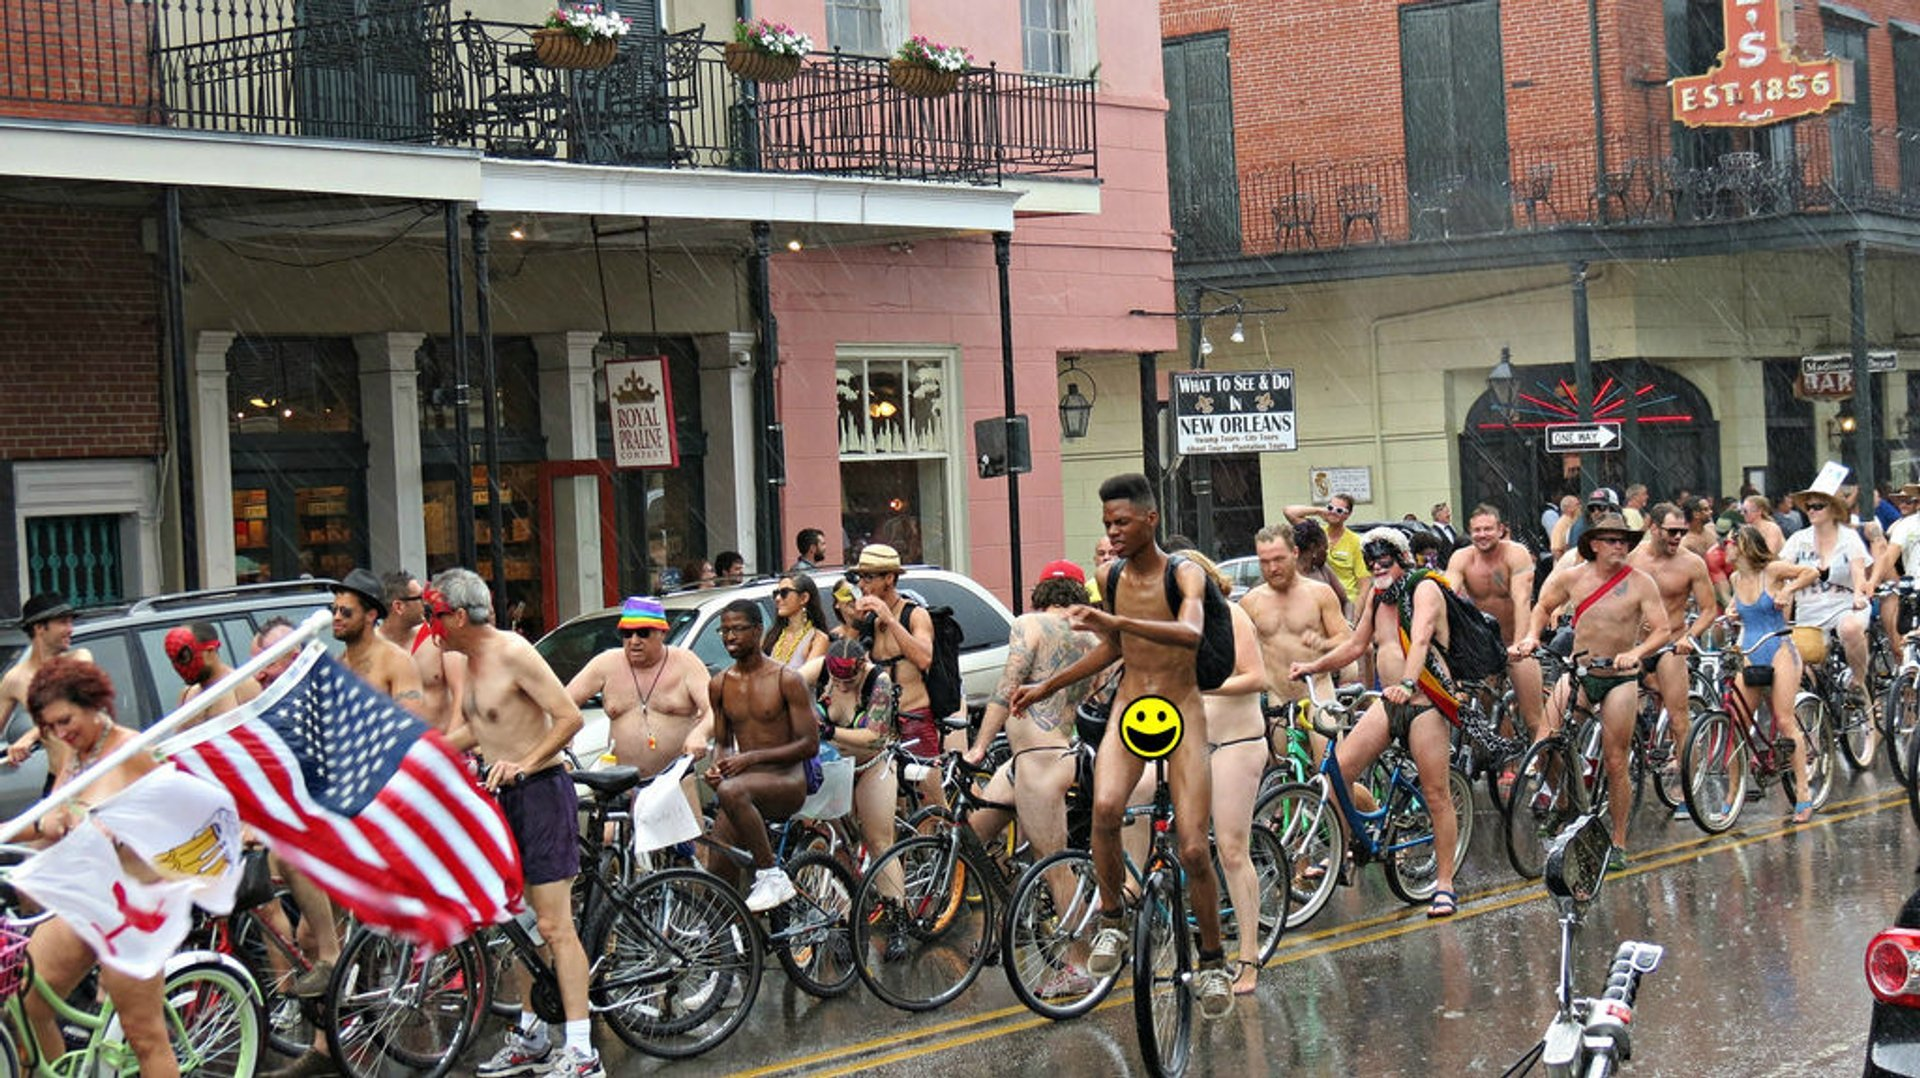 World Naked Bike Ride in New Orleans 2019 - Best Time